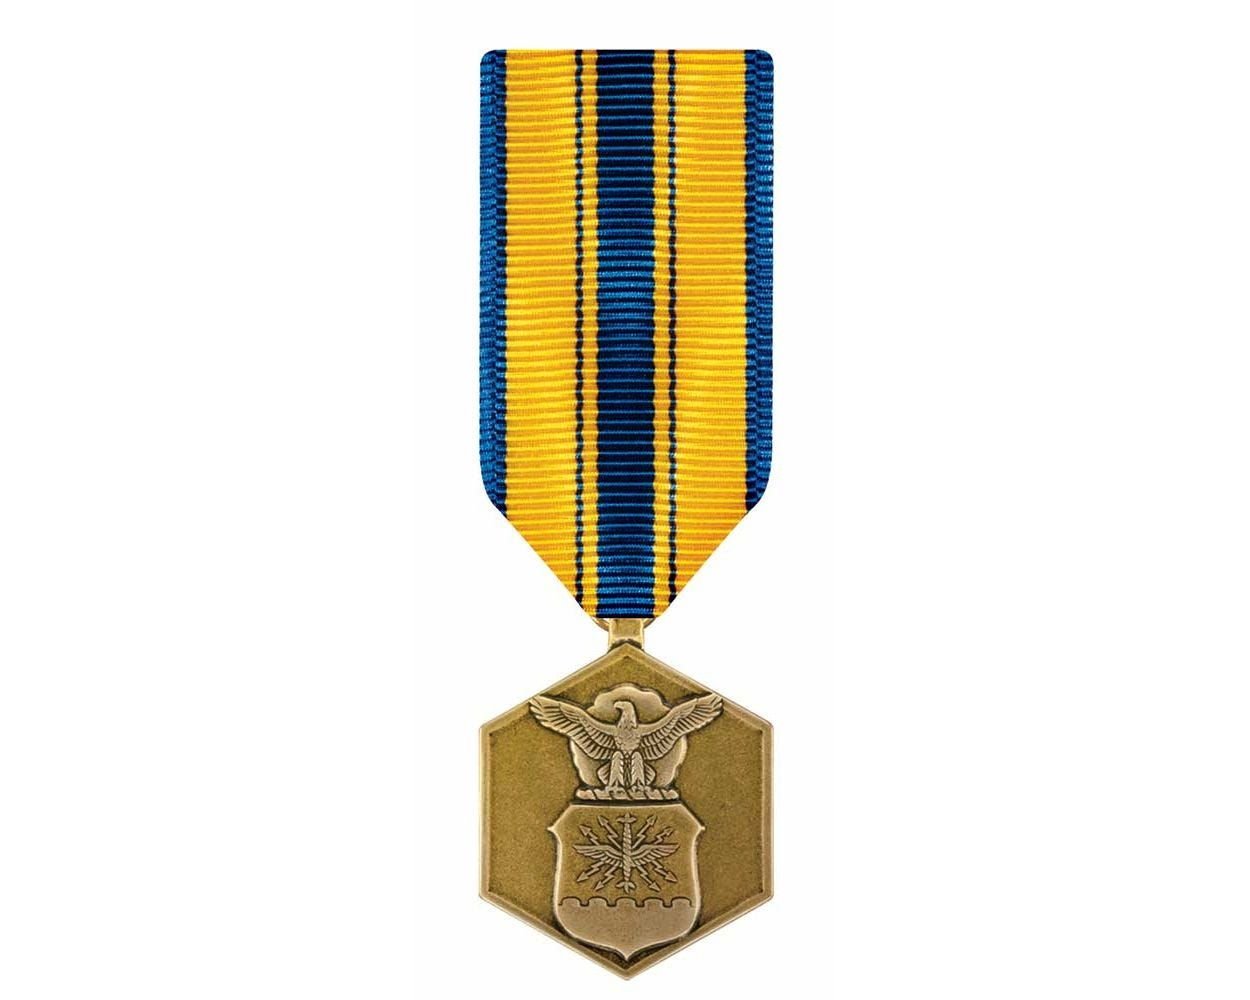 GENUINE FULL SIZE US MILITARY MEDAL AIR FORCE COMMENDATION